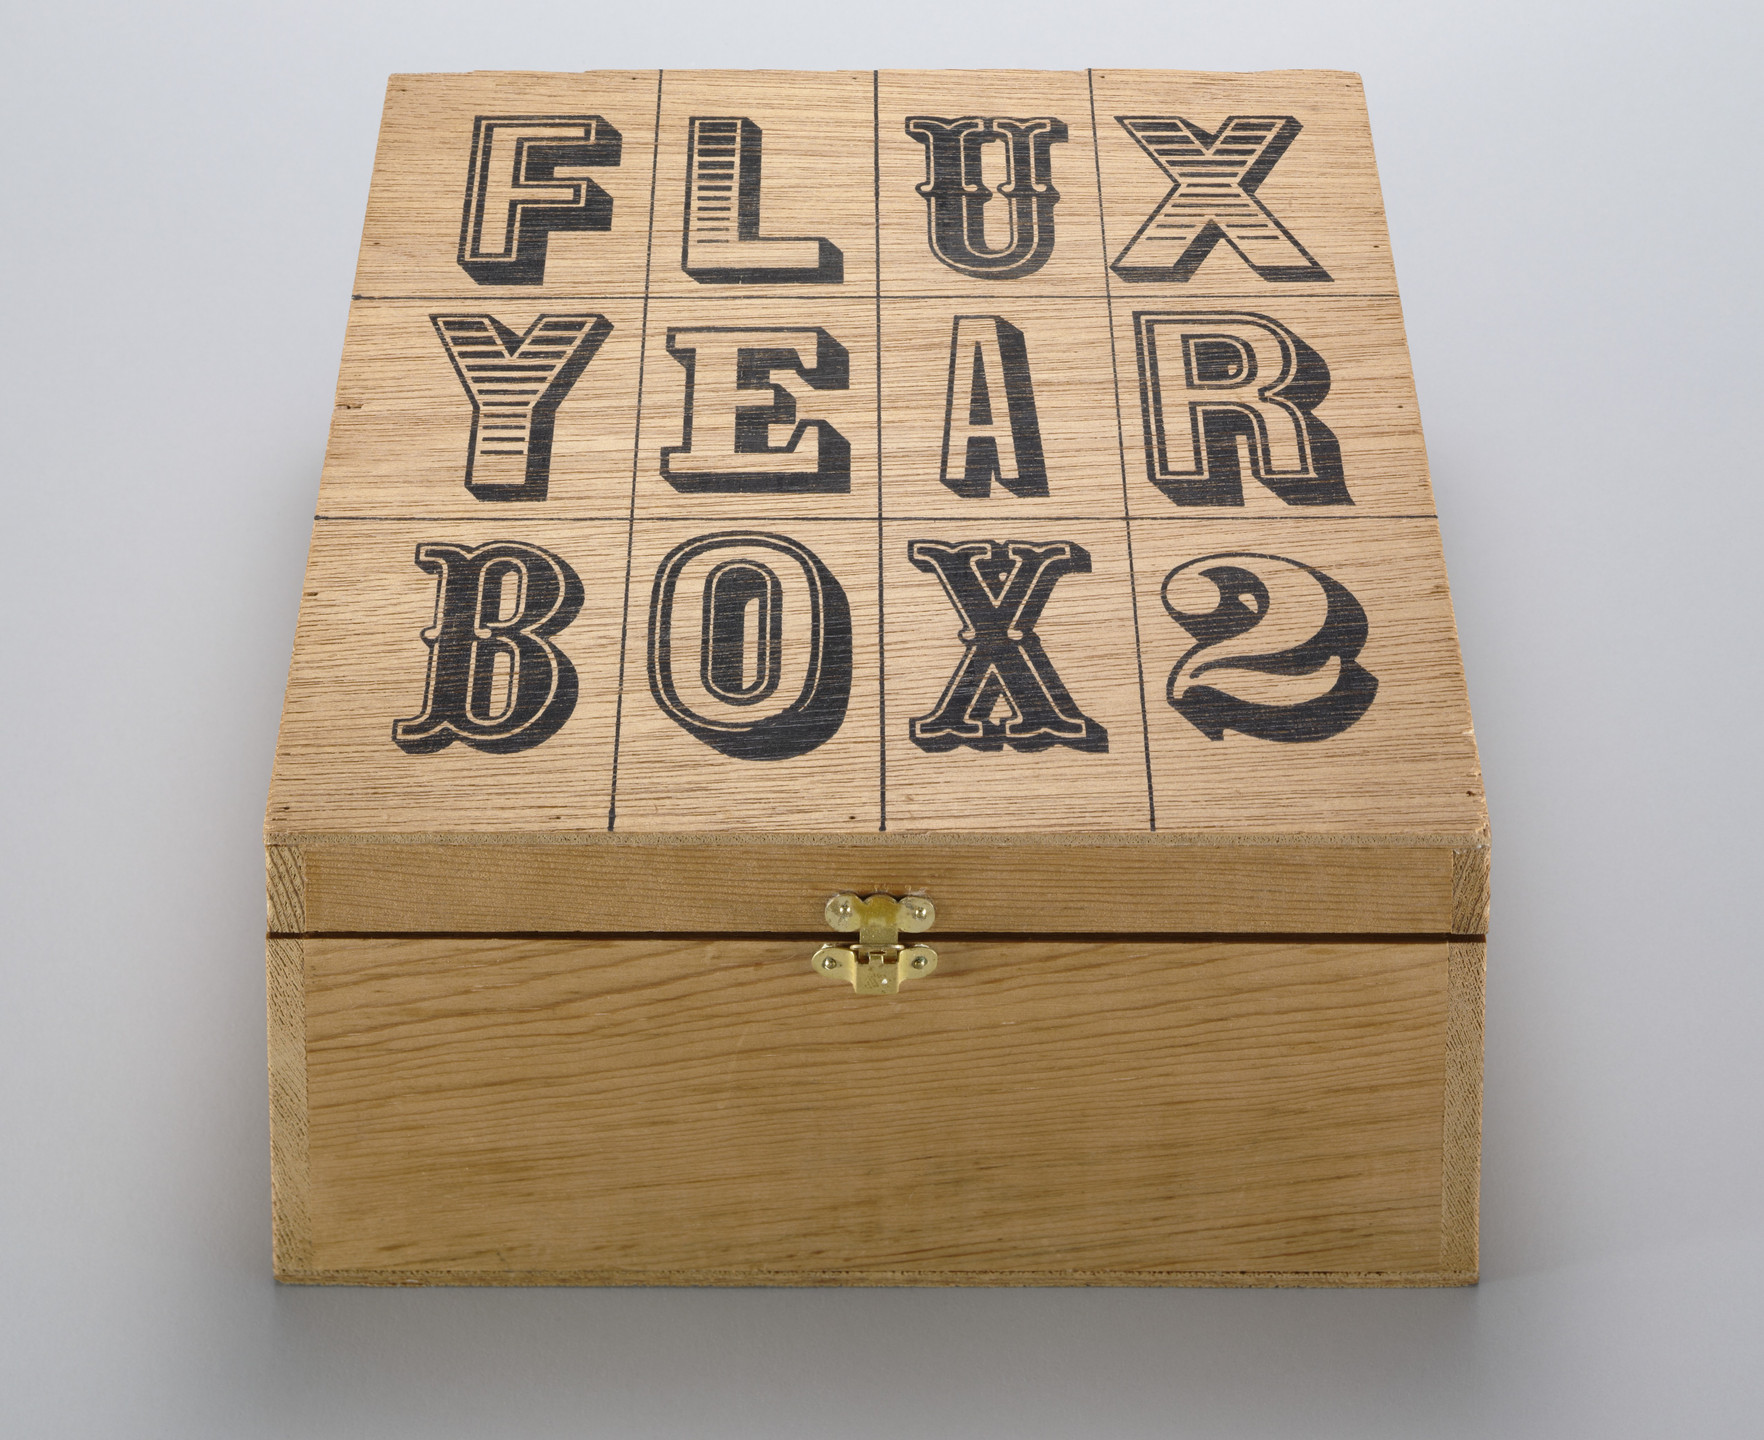 Various Artists, George Brecht, Willem de Ridder, Albert M. Fine, Ken Friedman, Shigeko Kubota, Frederic Lieberman, George Maciunas, Claes Oldenburg, Benjamin Patterson, James Riddle, Paul Sharits, Bob Sheff, Ben Vautier, Robert Watts. Flux Year Box 2. c. 1968